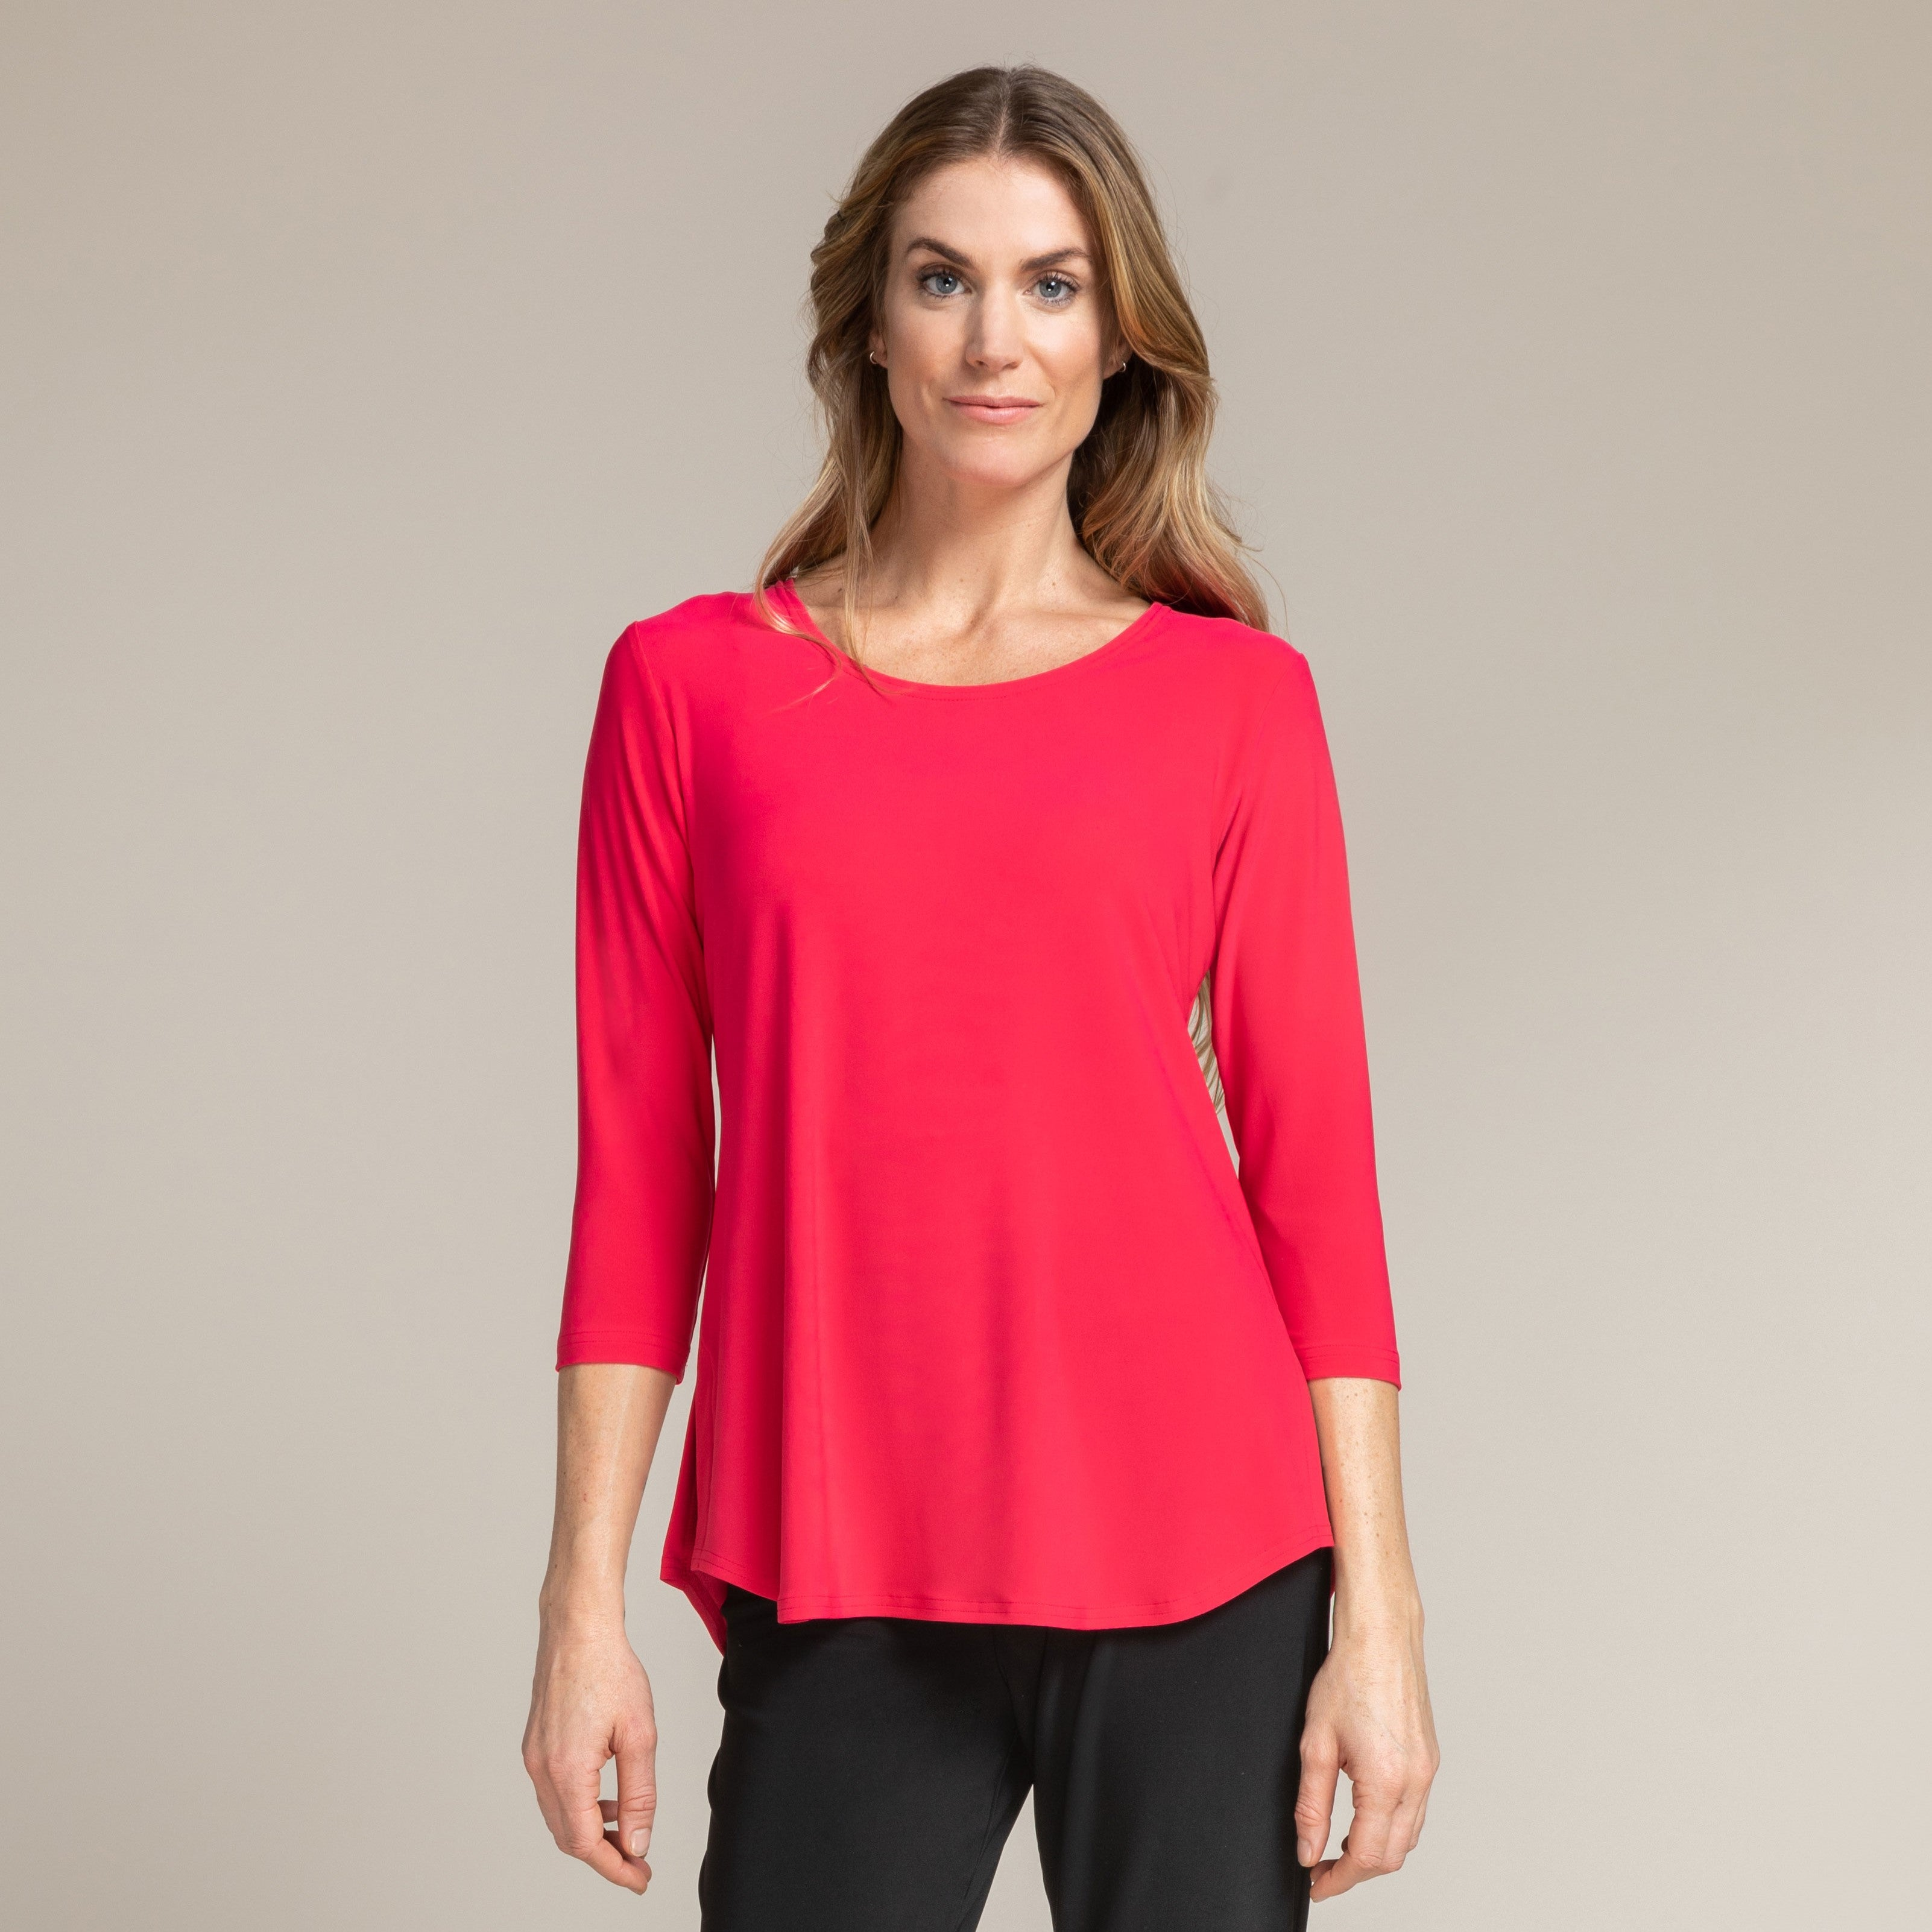 Go To Classic T, 3/4 Sleeve - 22110R-2